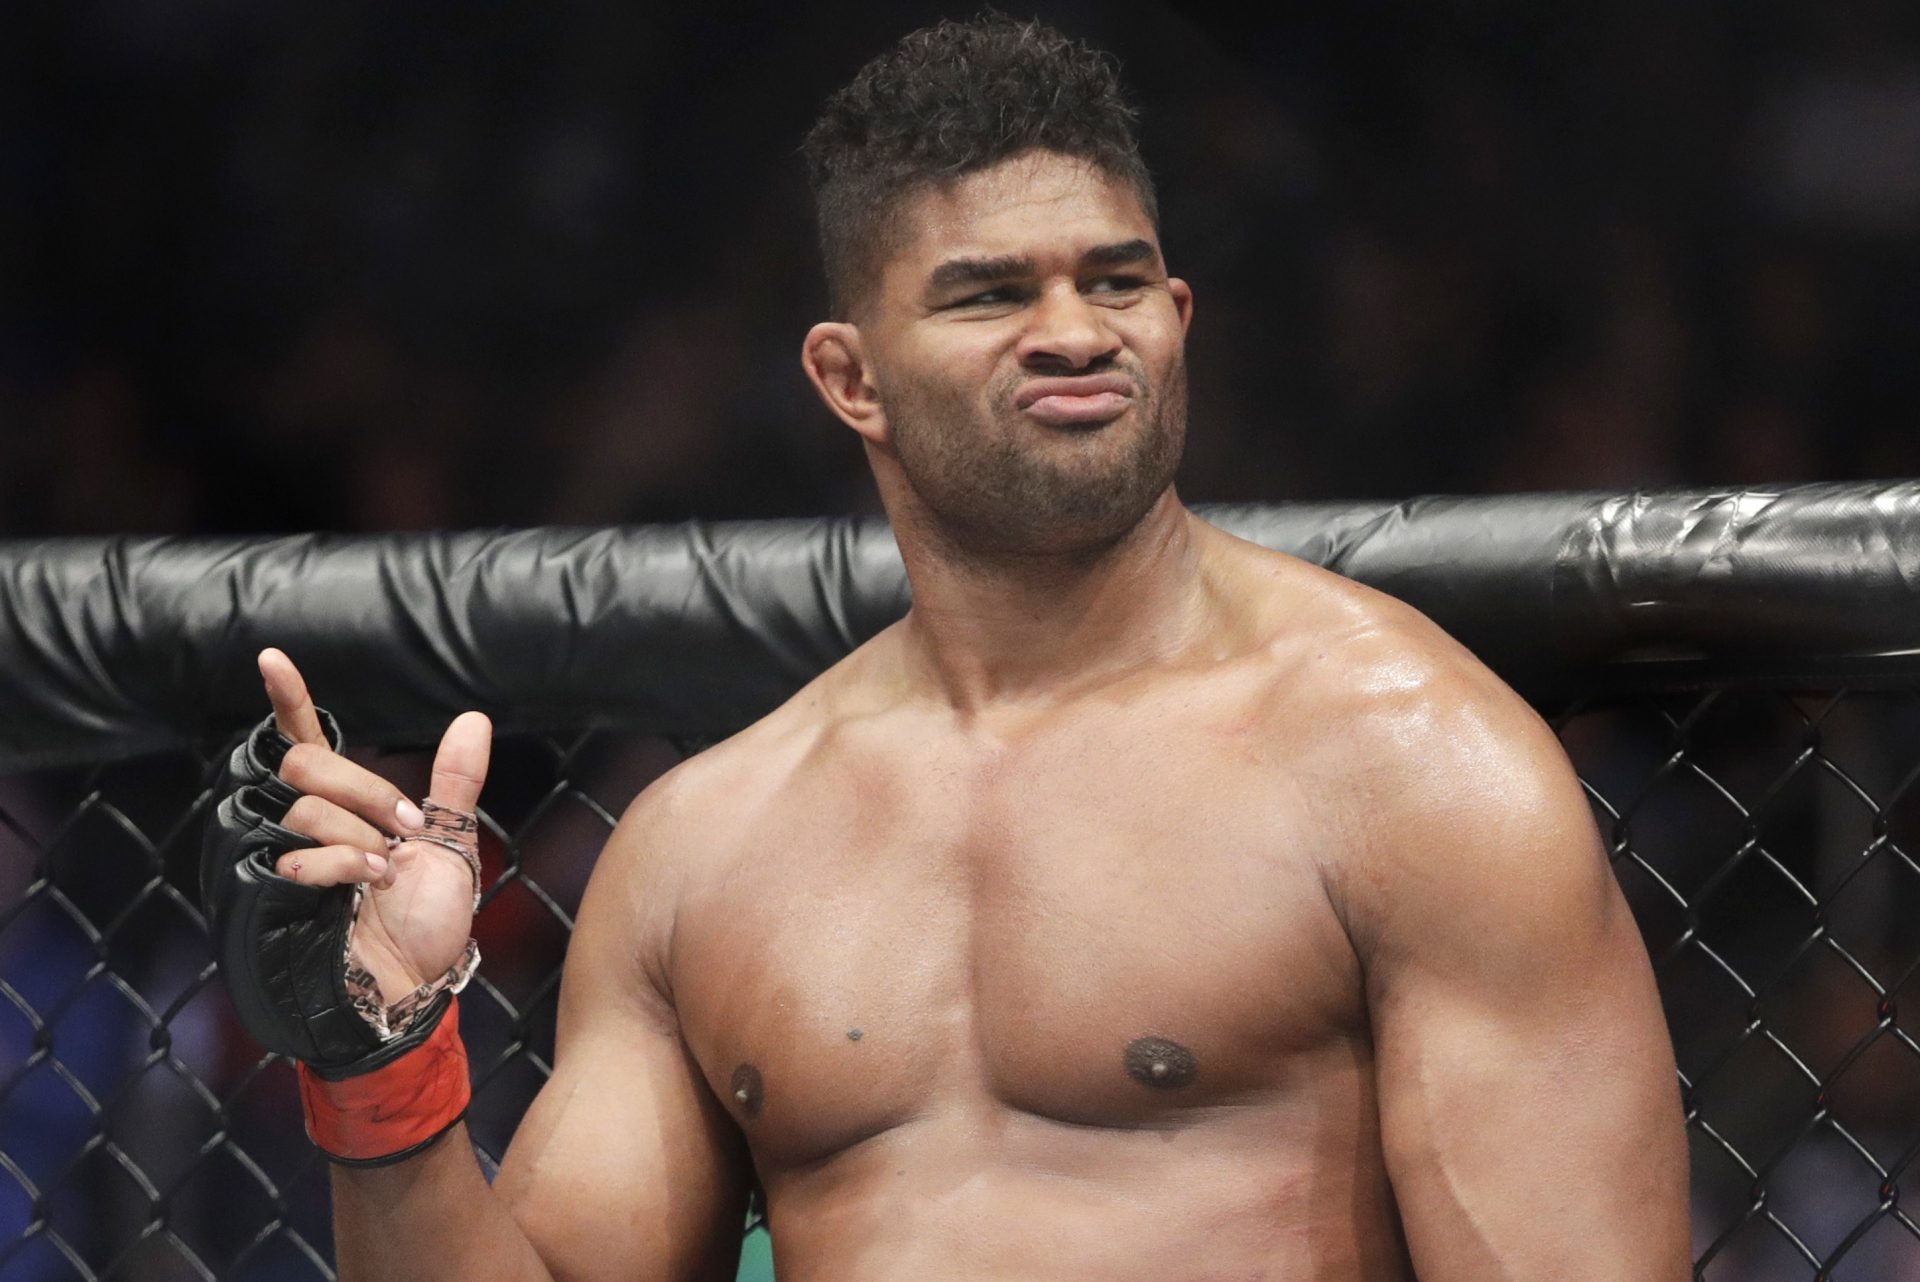 Former UFC fighter Alistair Overeem joins GLORY Kickboxing on a multi-year deal - Overeem